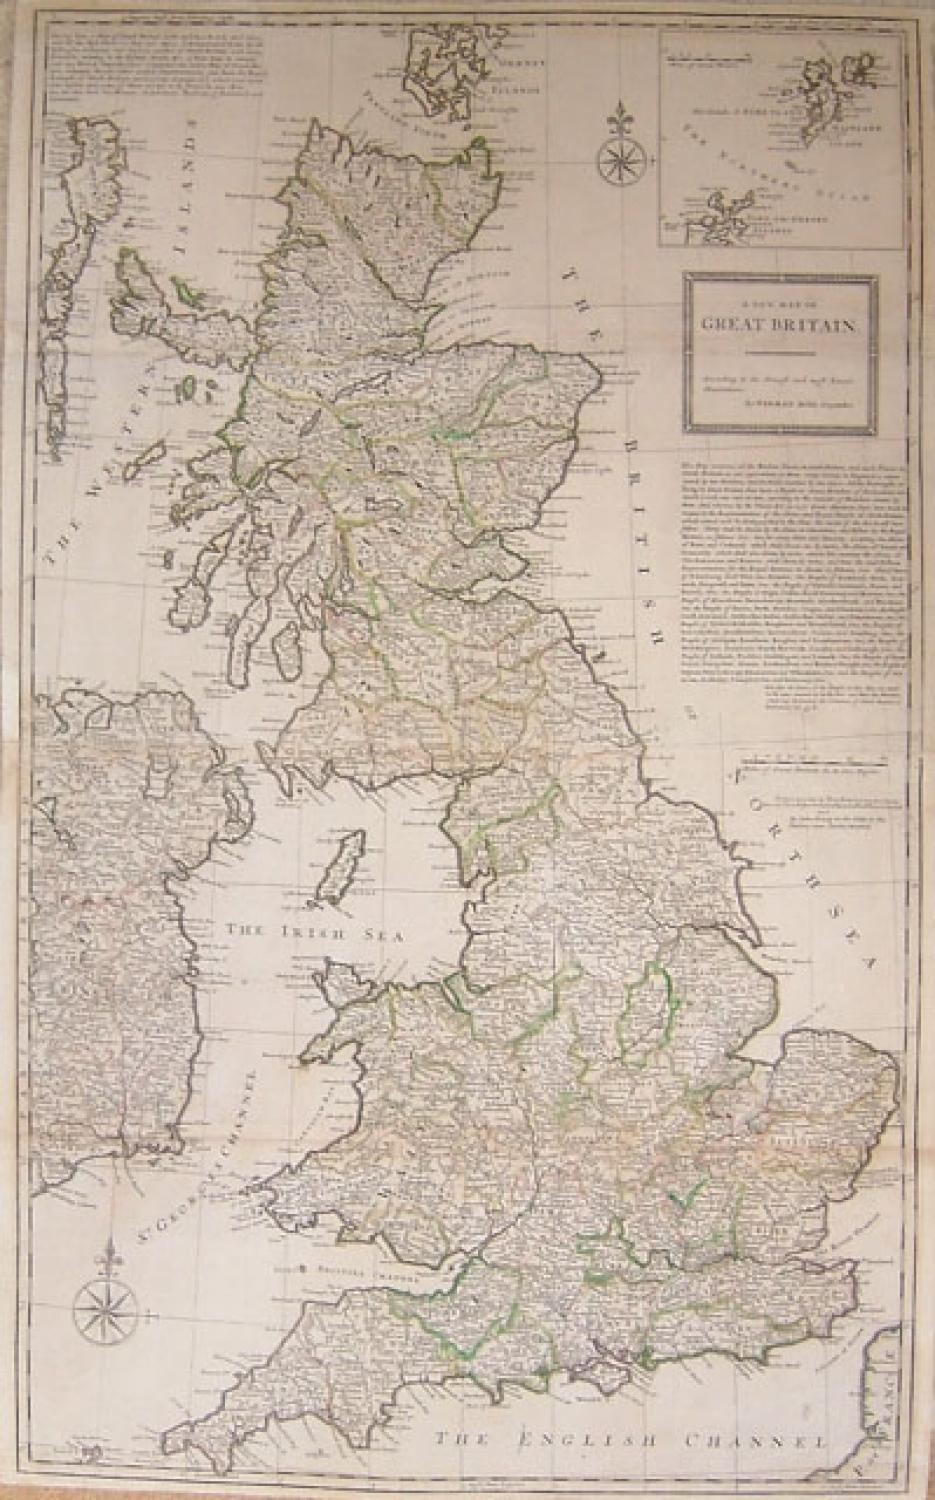 A New Map of Great Britain...